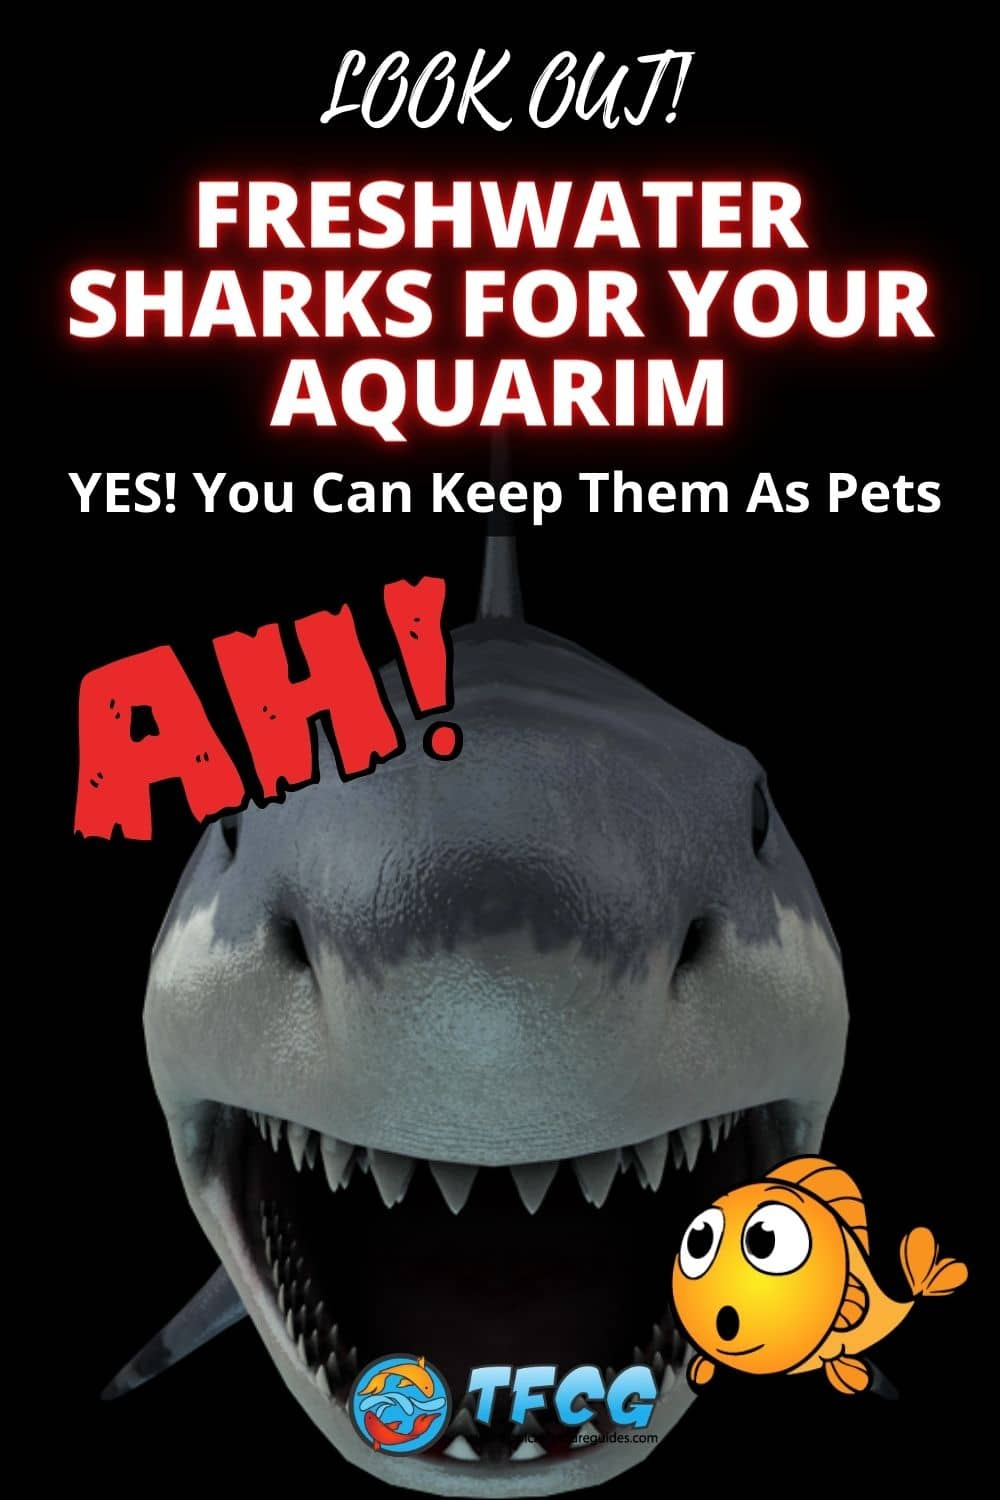 Freshwater Sharks For Your Aquarium You Can Keep As Pets